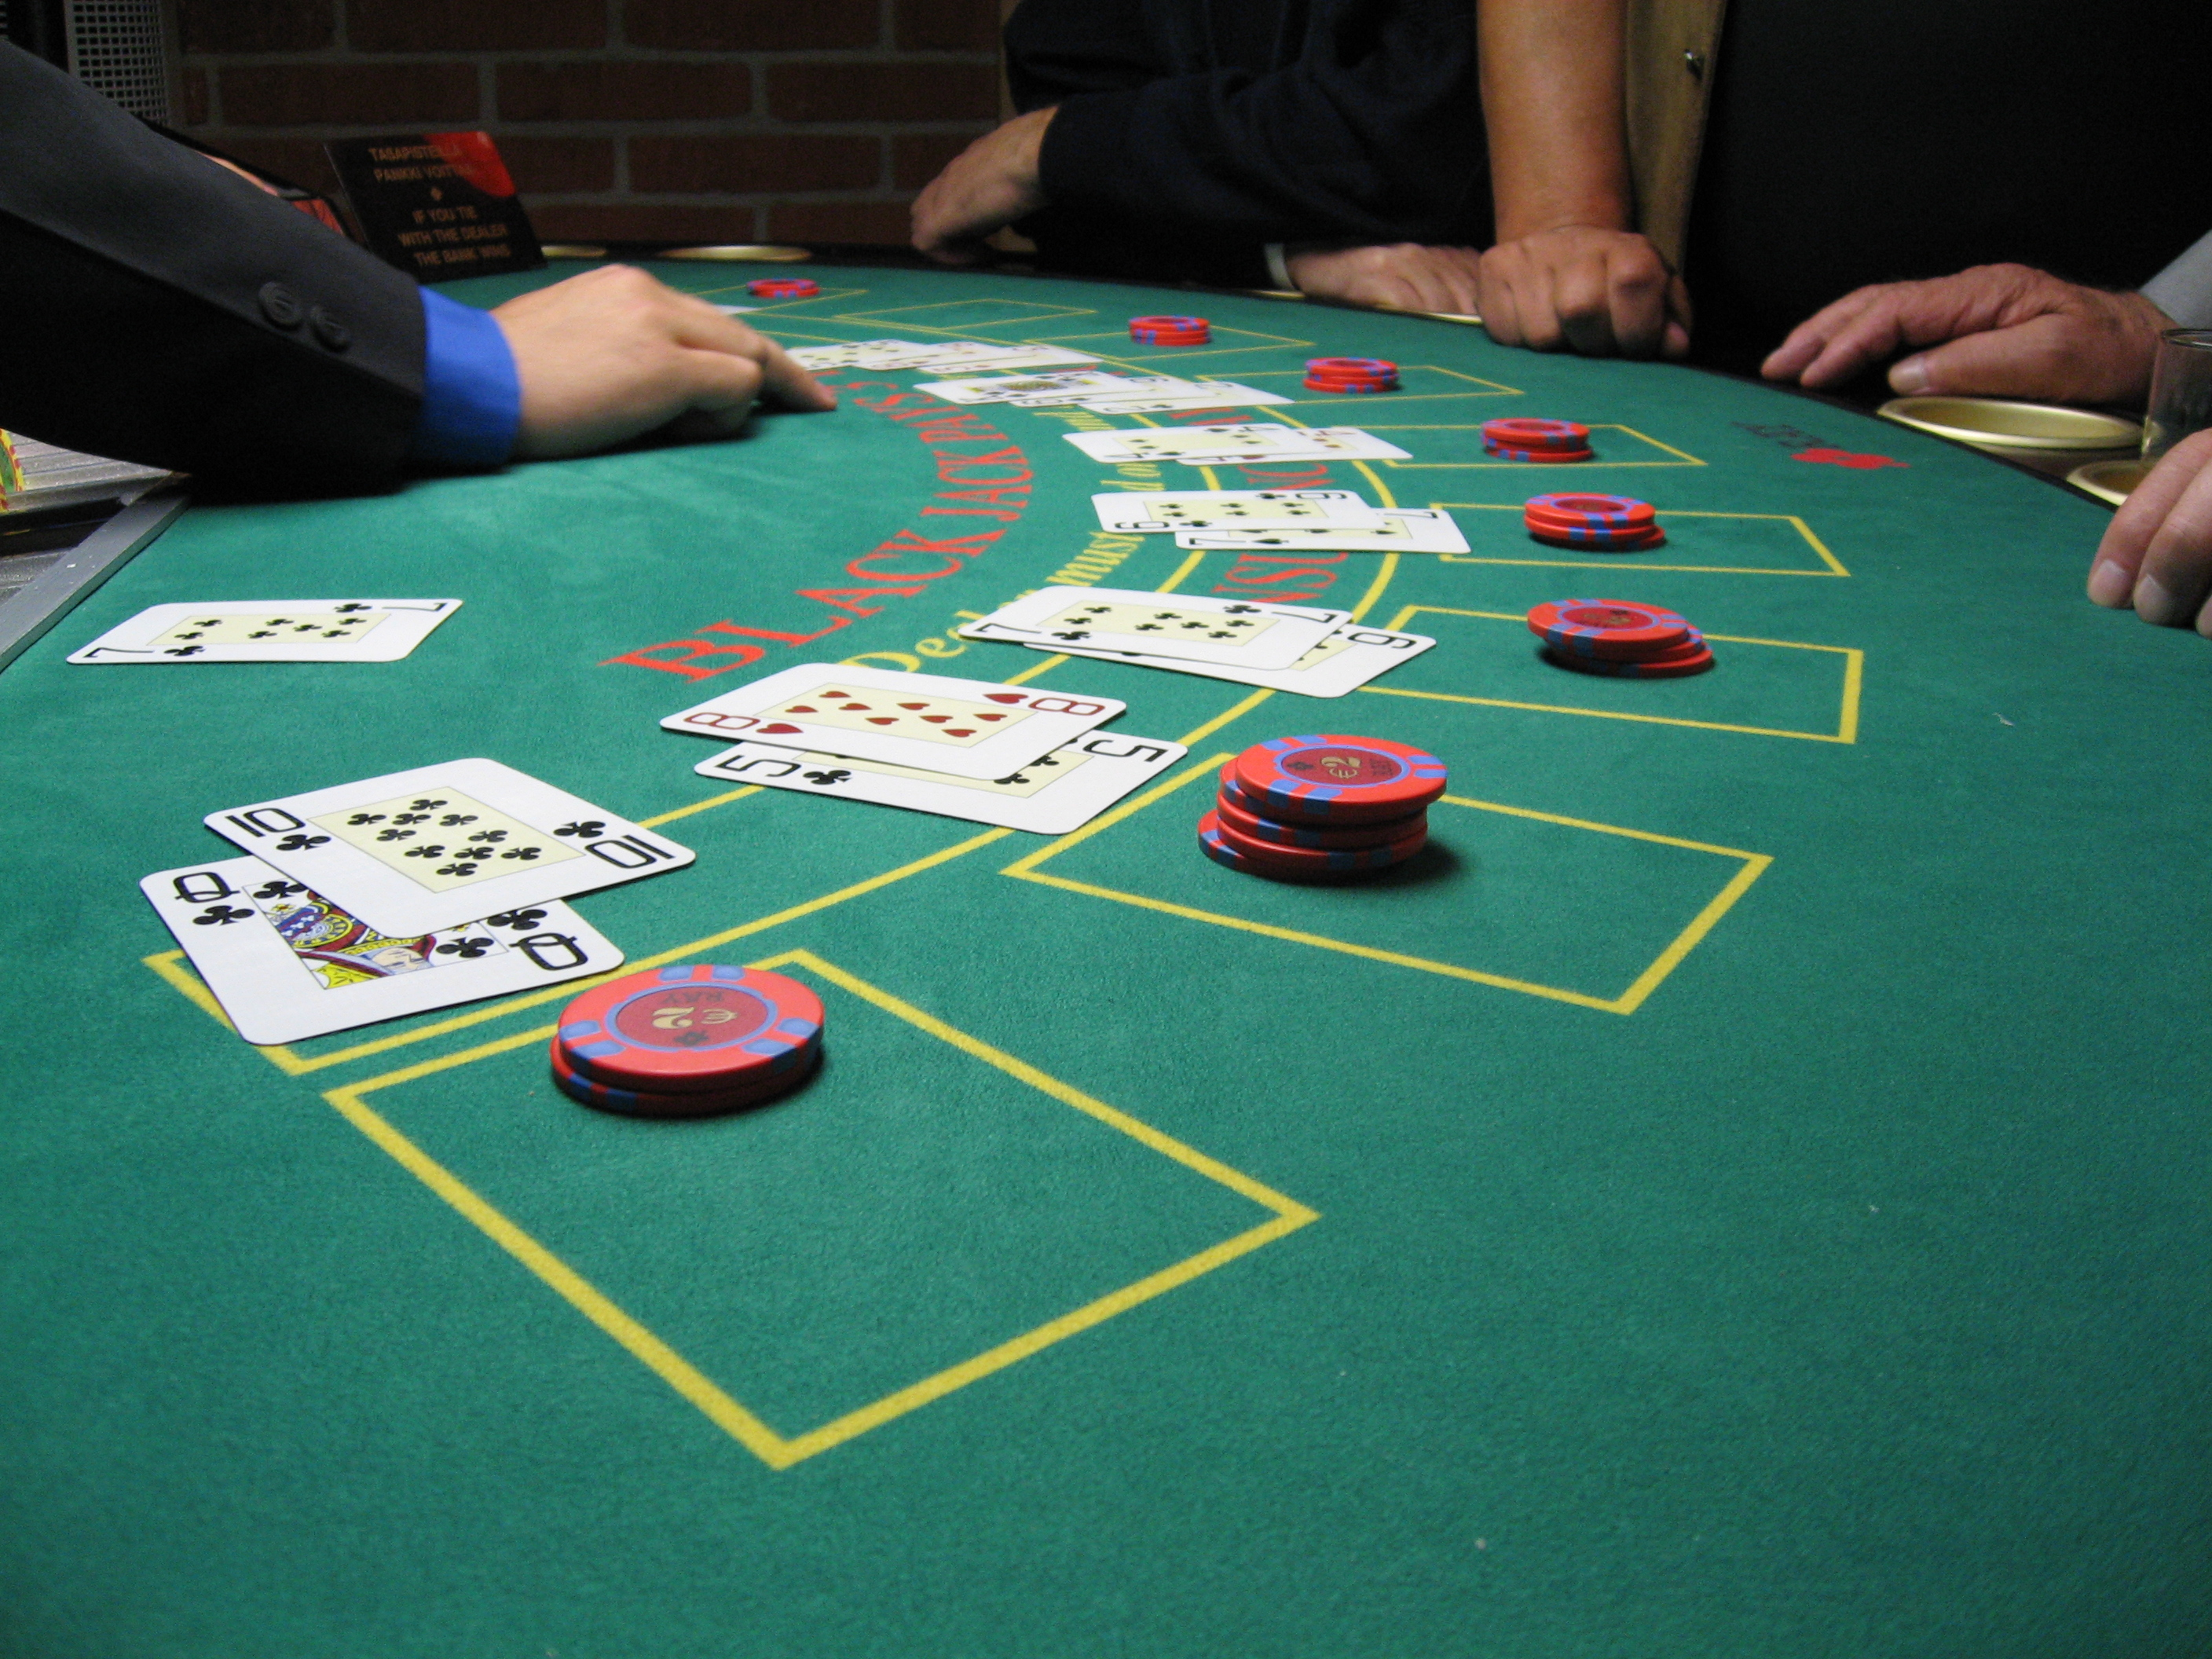 Is playing poker for money illegal in florida